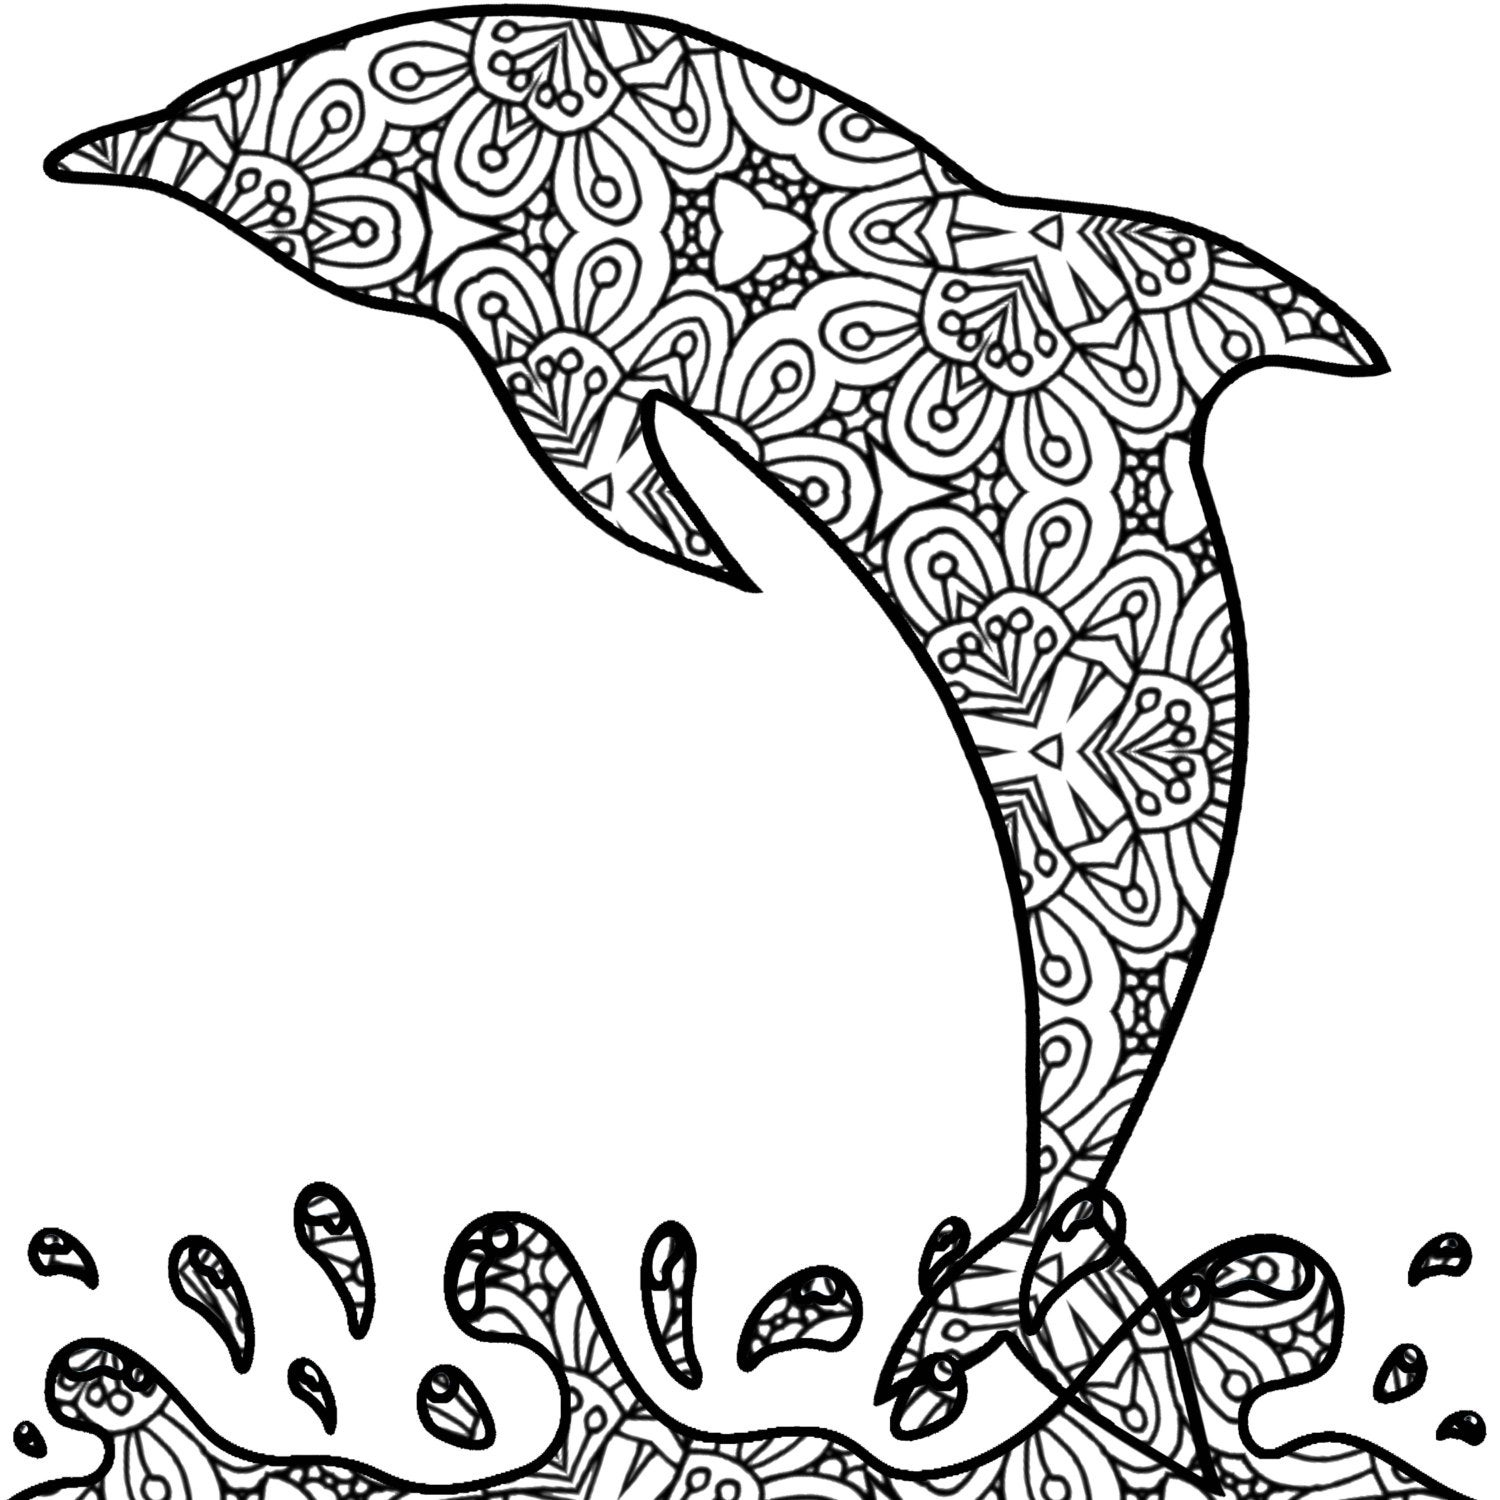 dolphin colouring in dolphin coloring page 1 color kid stuff colouring in dolphin